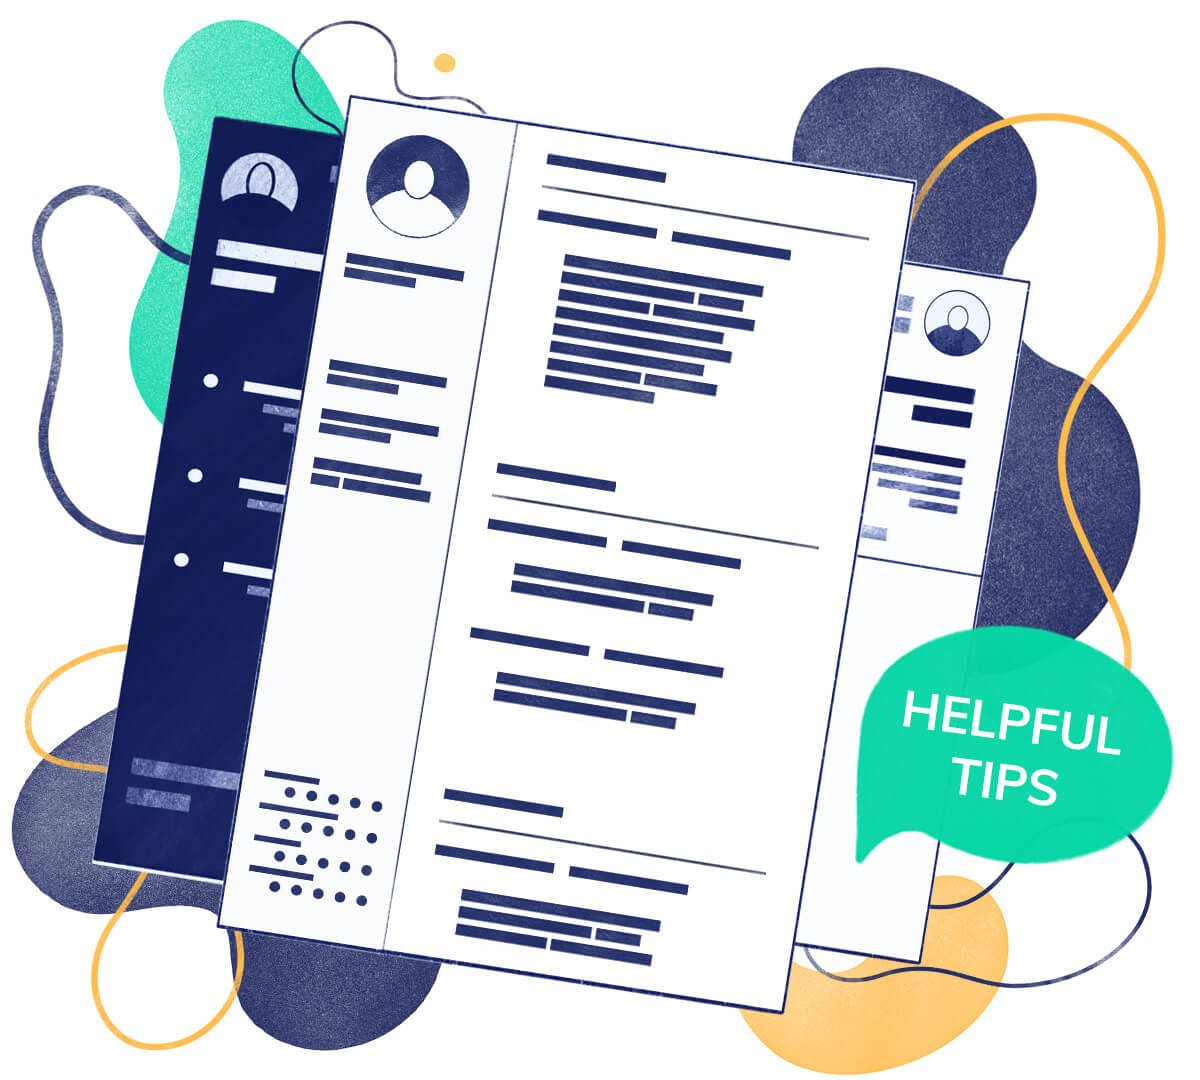 50+ Best CV Tips, Advice, Dos & Don'ts, and Mistakes to Avoid